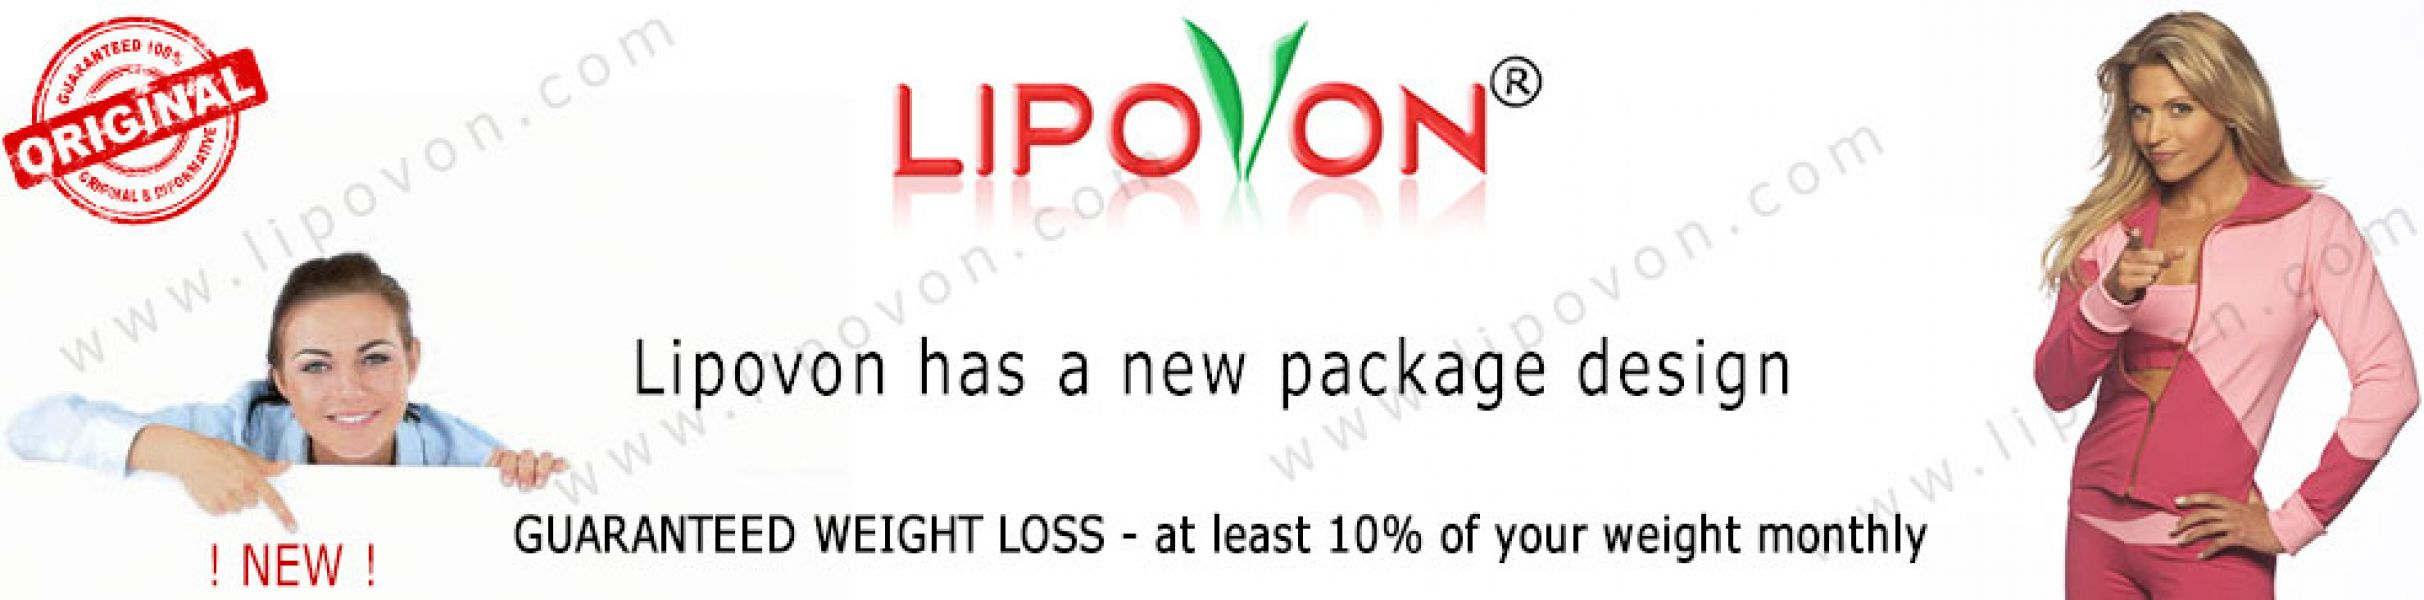 Try now!!! Most effective weight loss product in the world - Lipovon